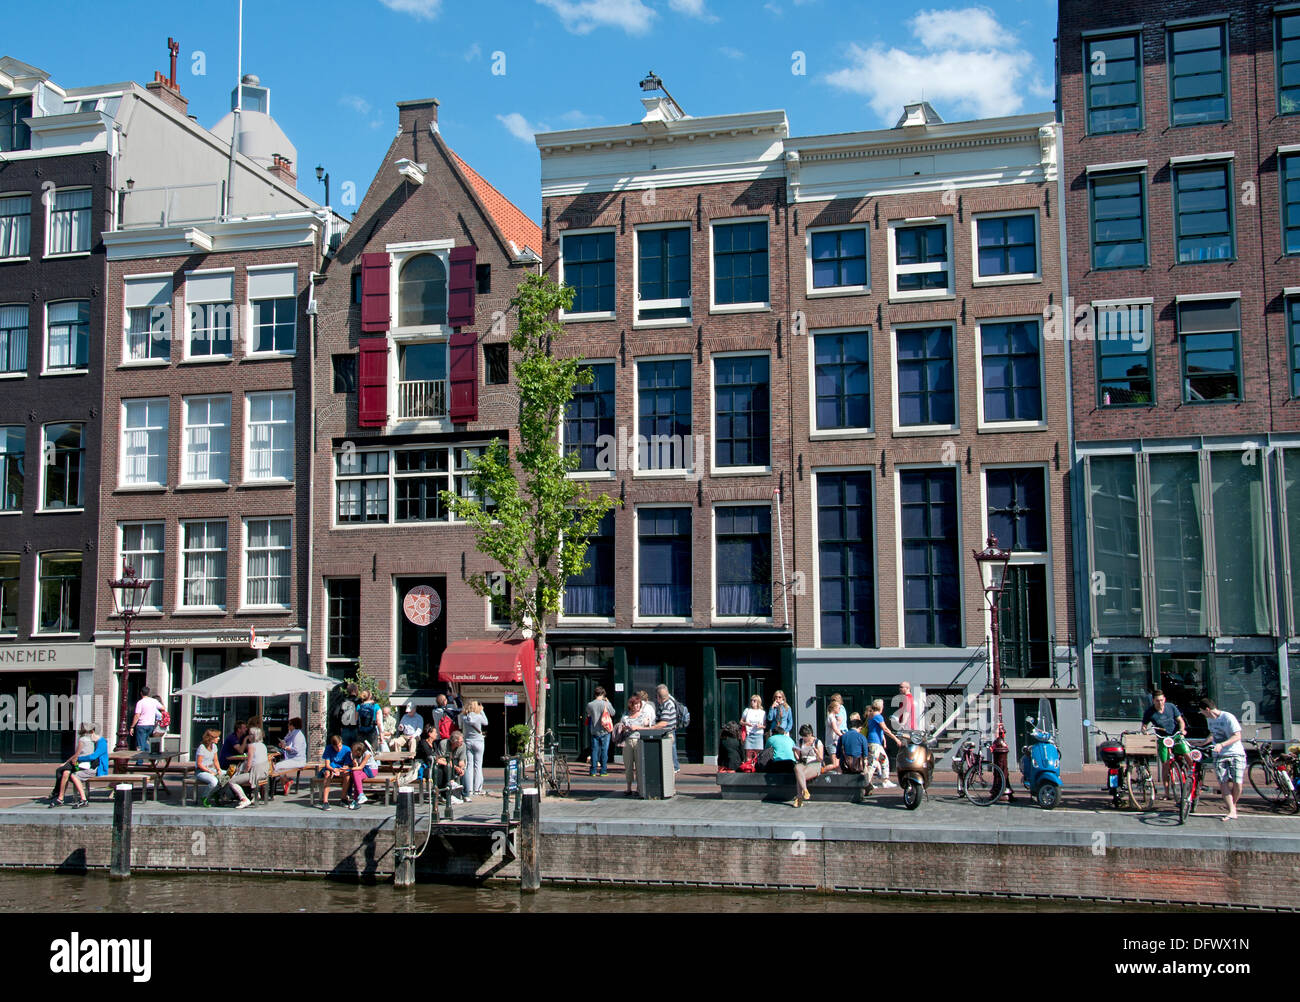 The Anne Frank House Prinsengracht 263 265 canal in